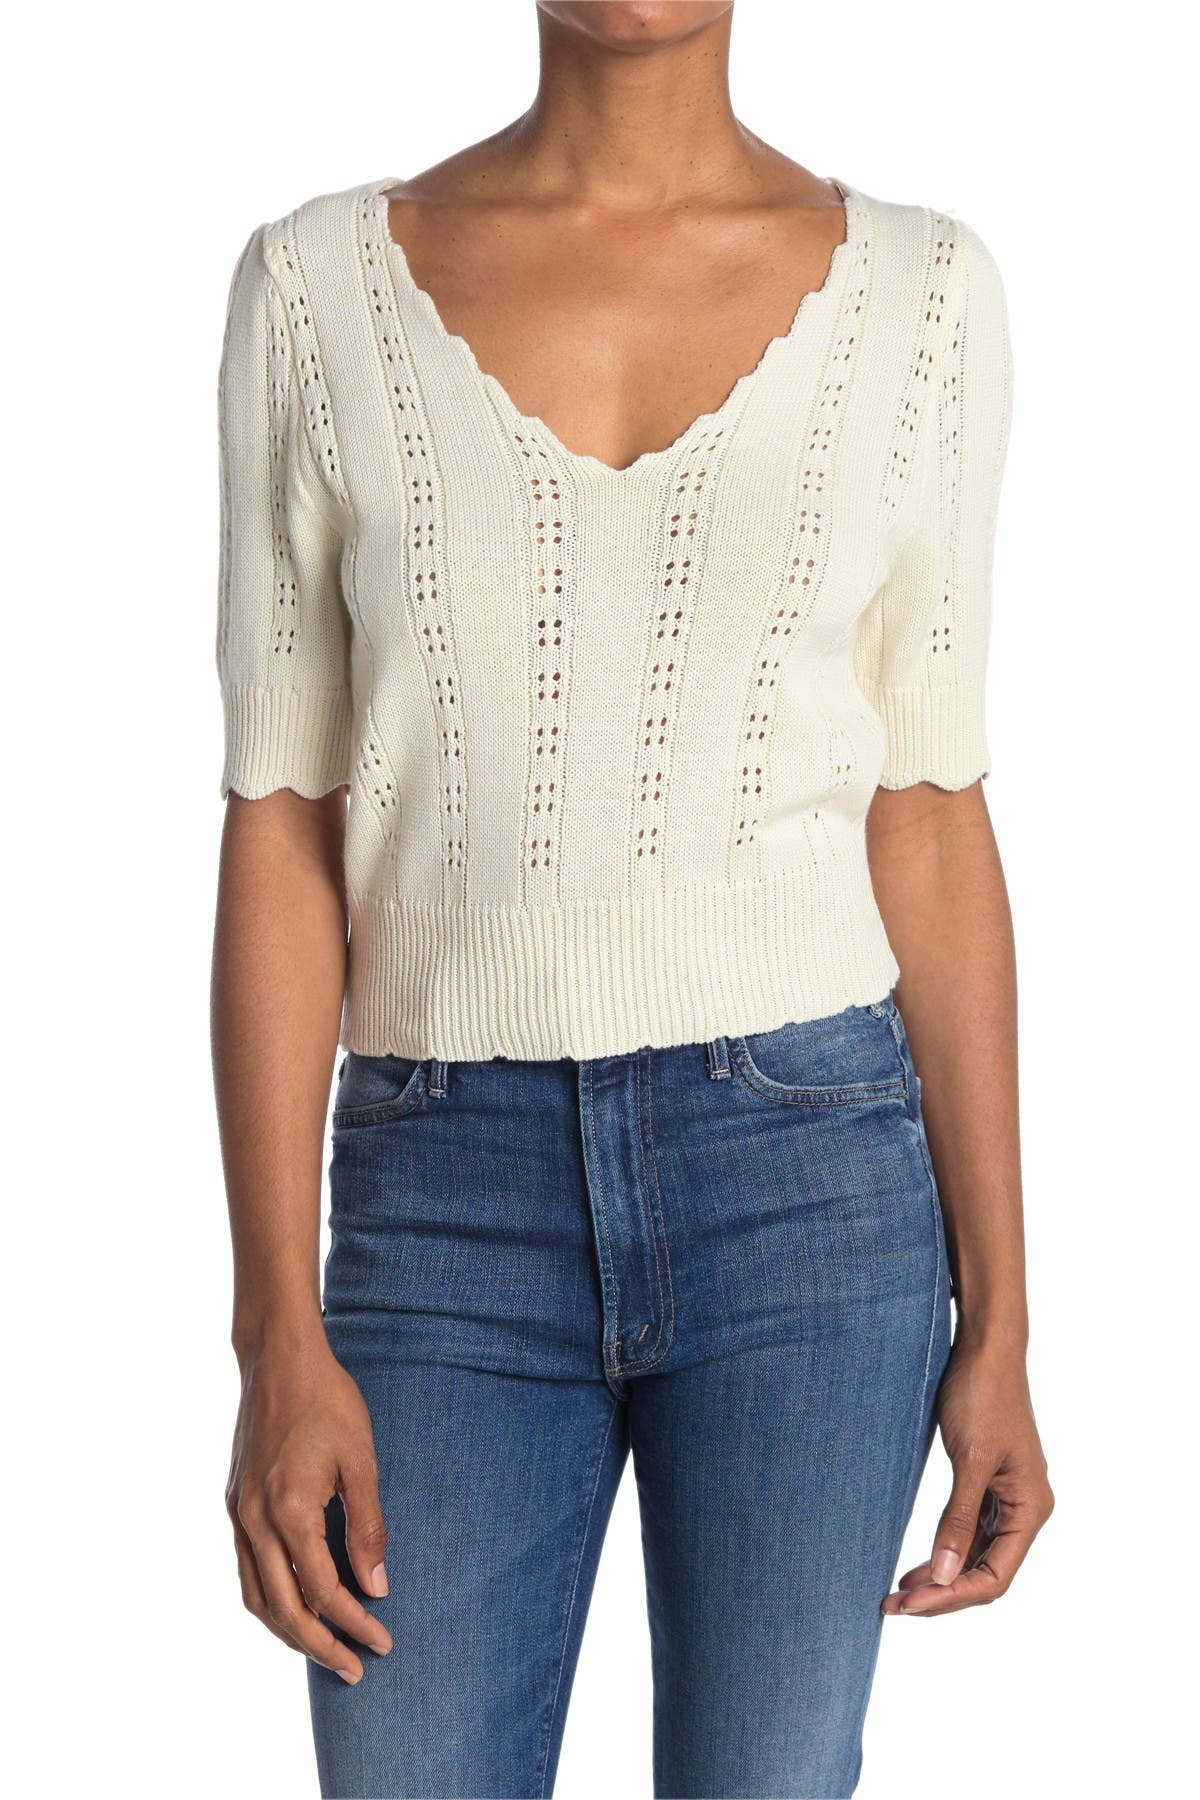 Image of Lush Scalloped Pointelle Knit Cropped Top